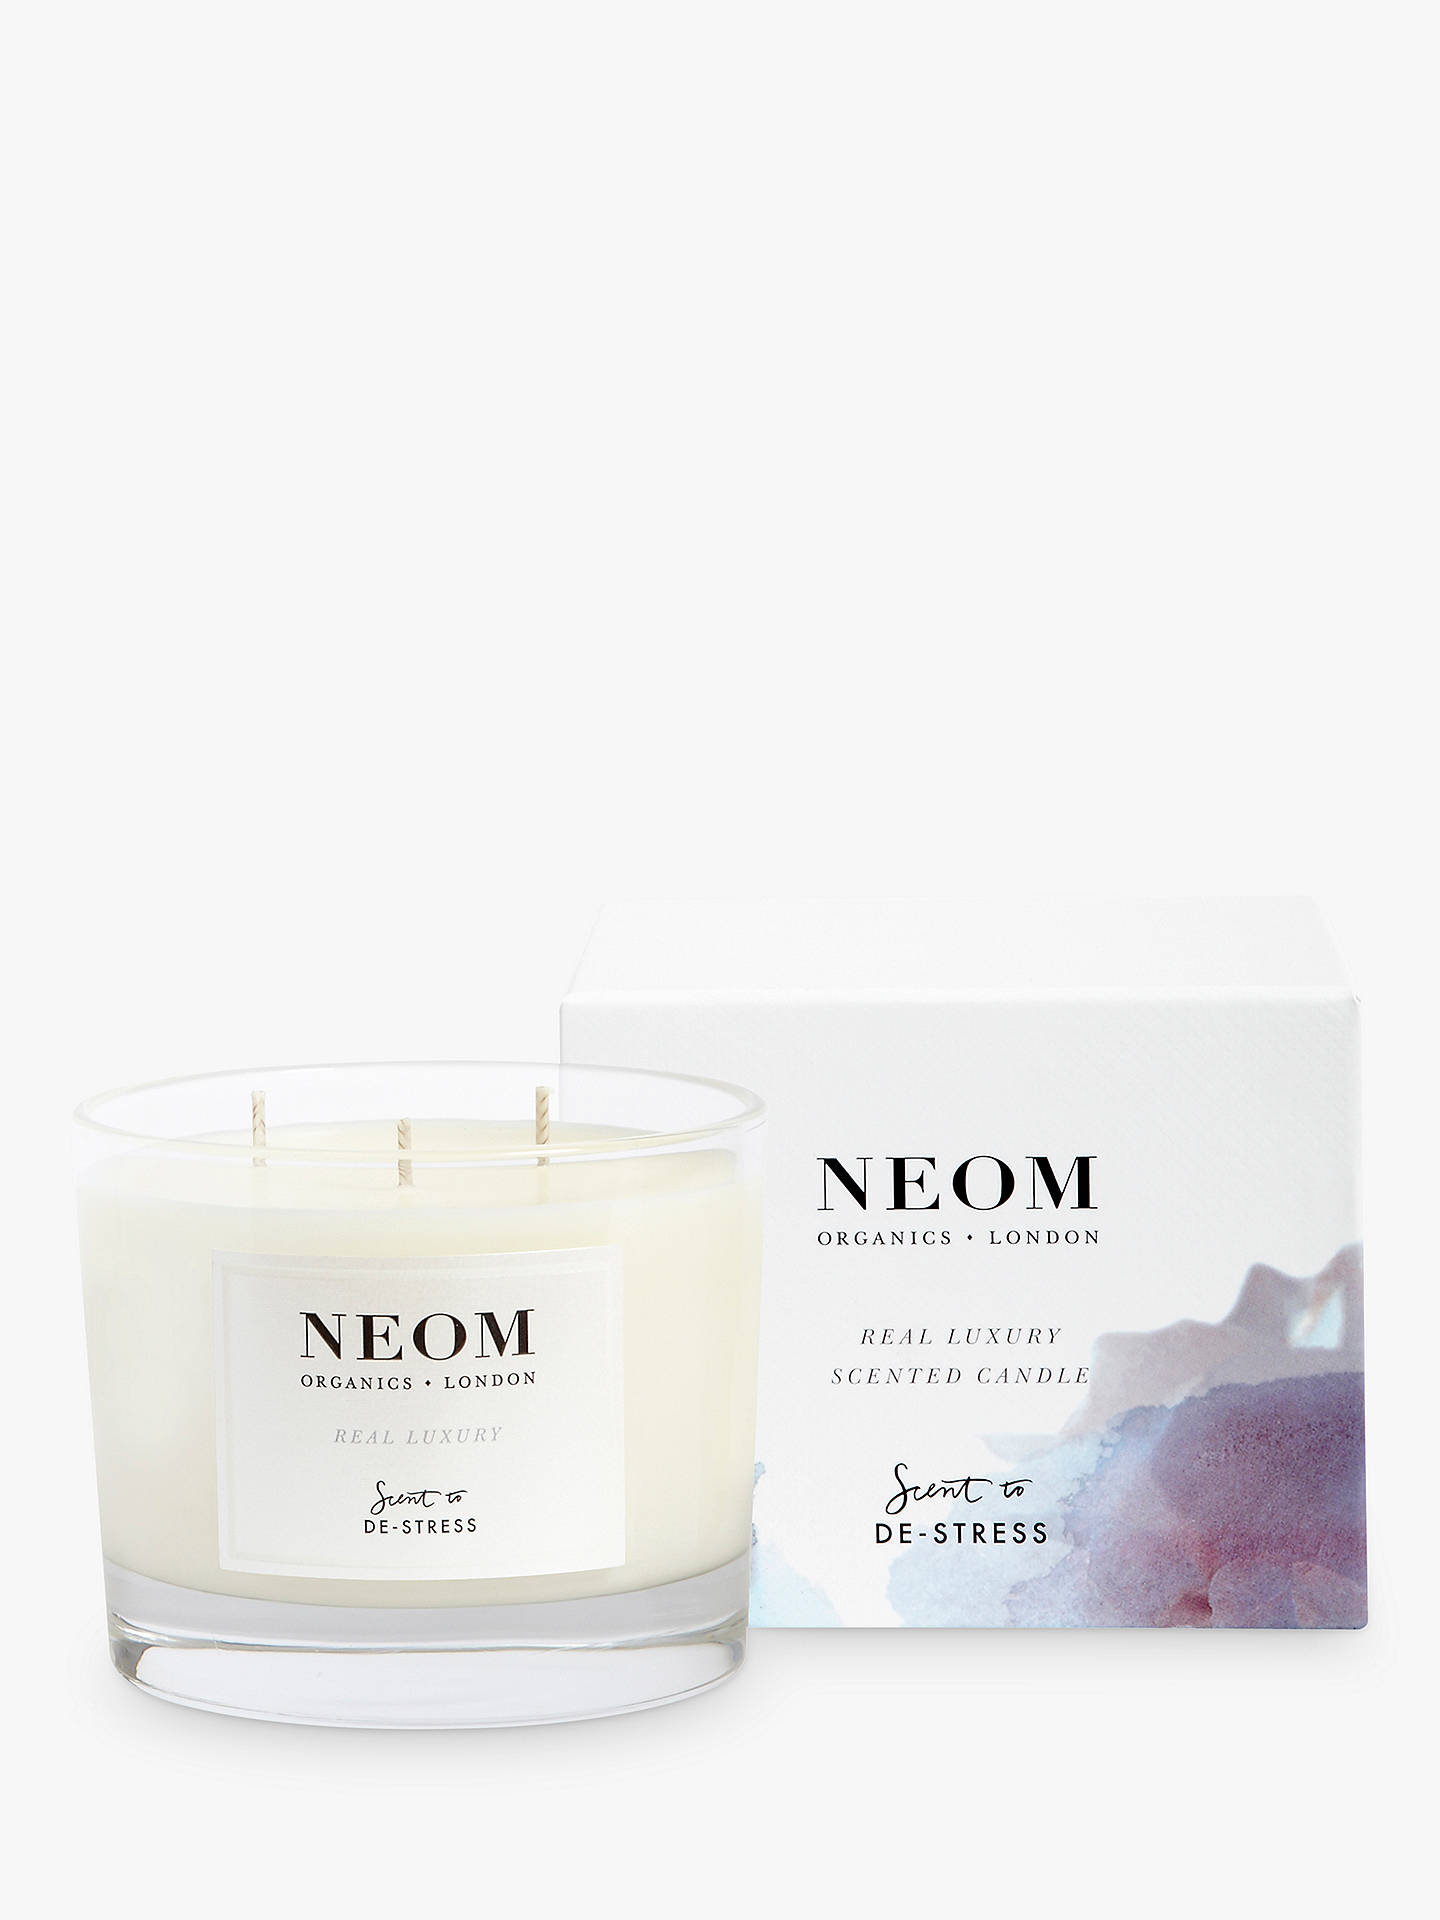 Buy Neom Organics London Real Luxury 3 Wick Scented Candle Online at johnlewis.com